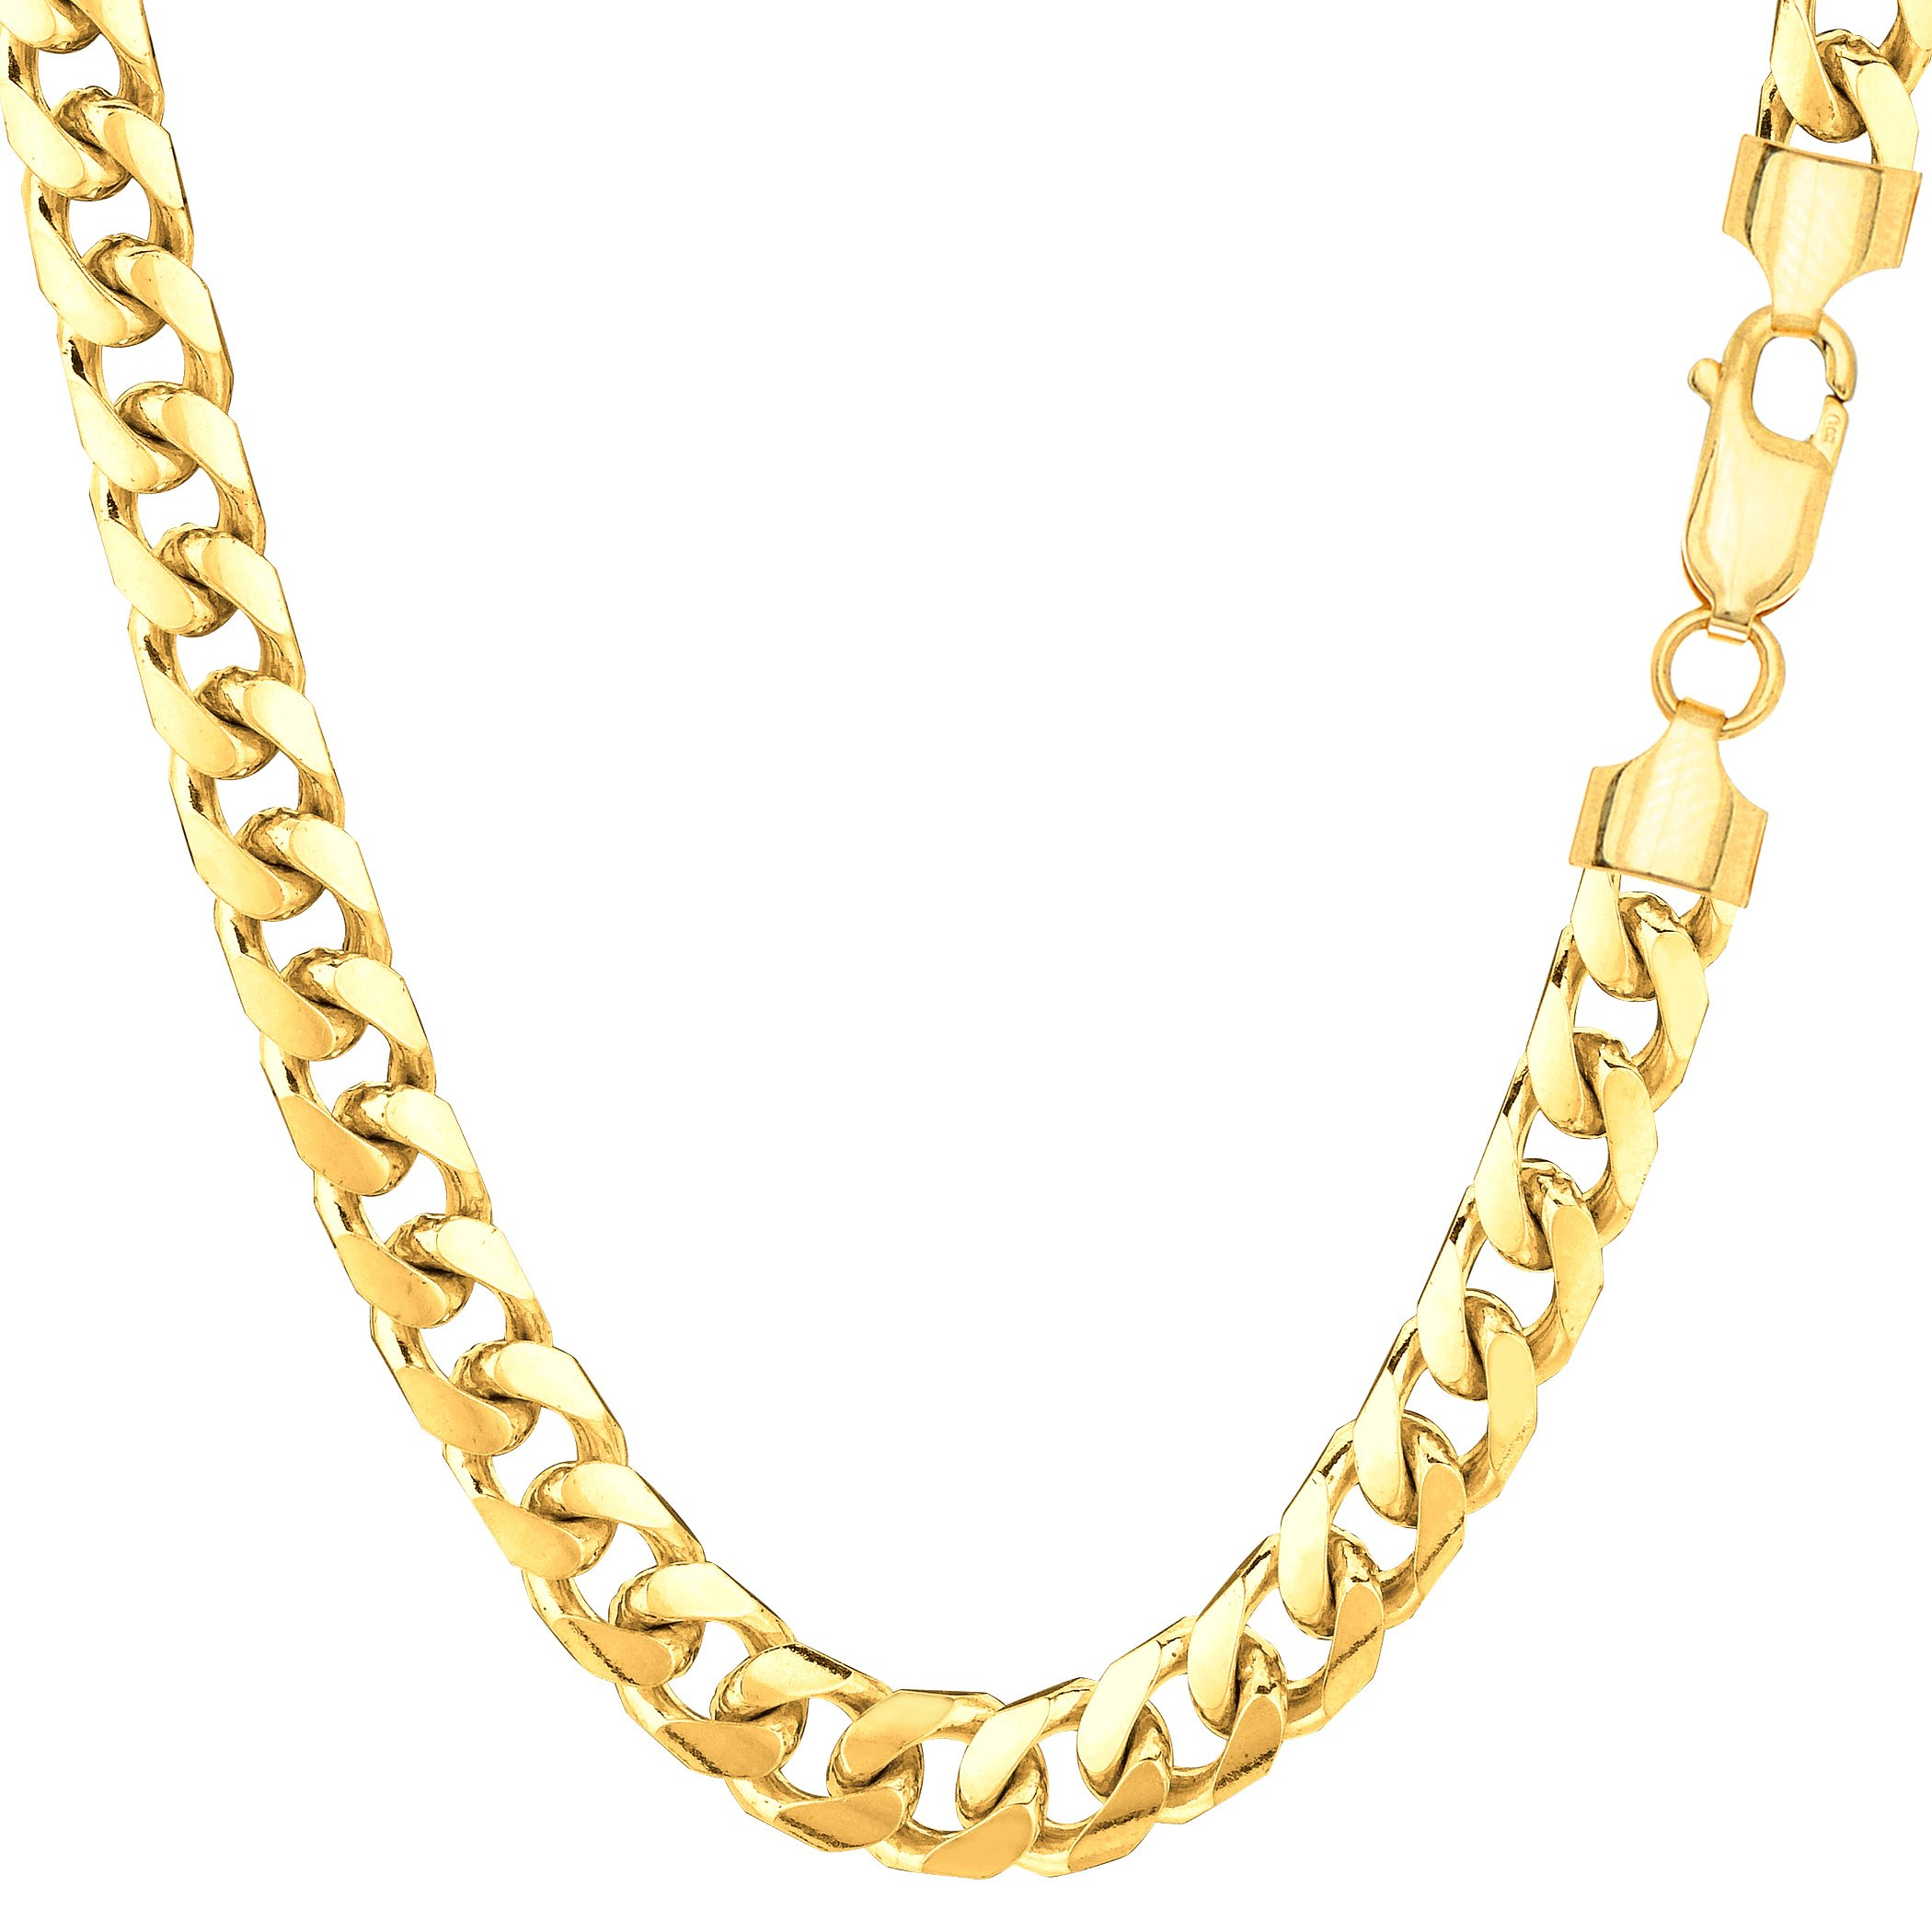 14k Yellow Gold Miami Cuban Link Chain Necklace - Width 5.8mm, 30''